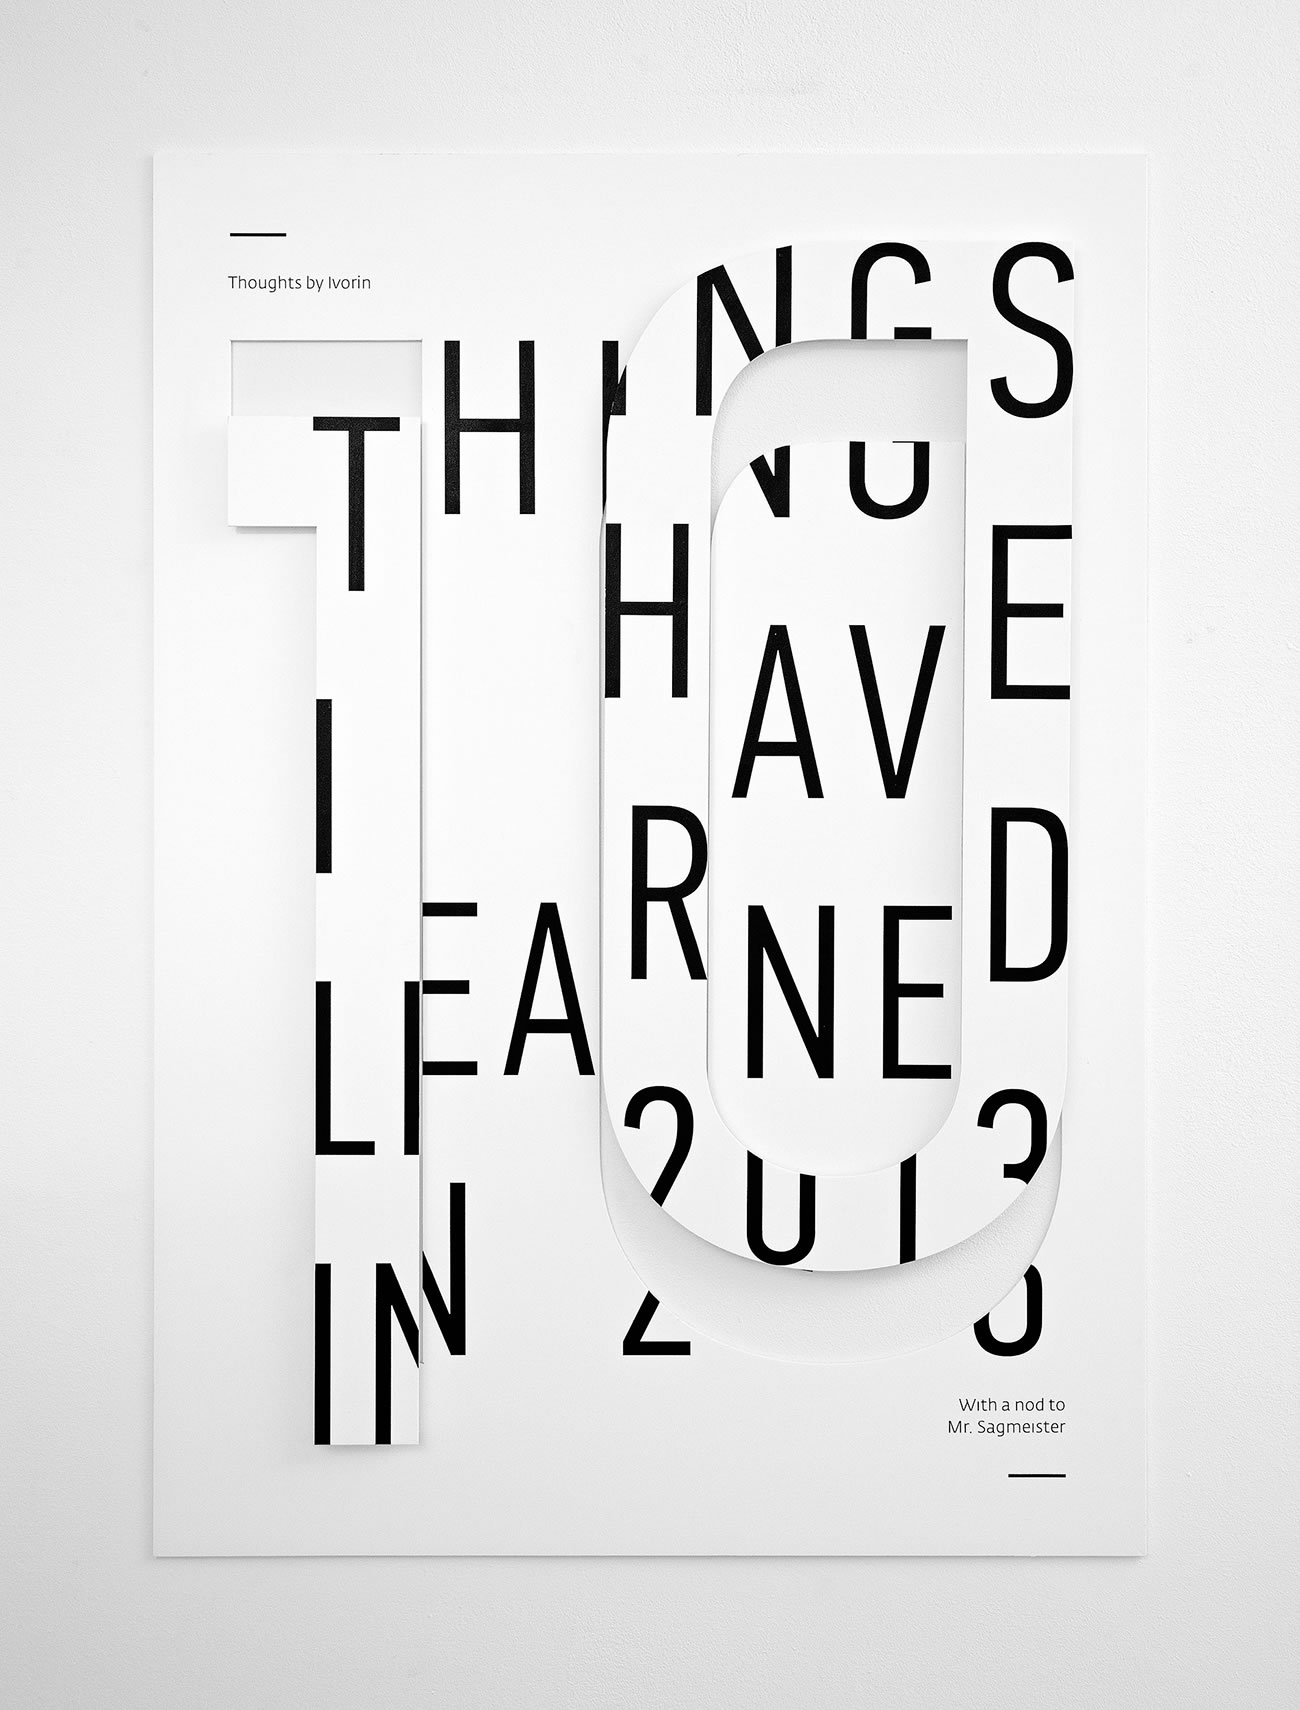 10 things I have learned in 2013 by Ivorin Vrkas